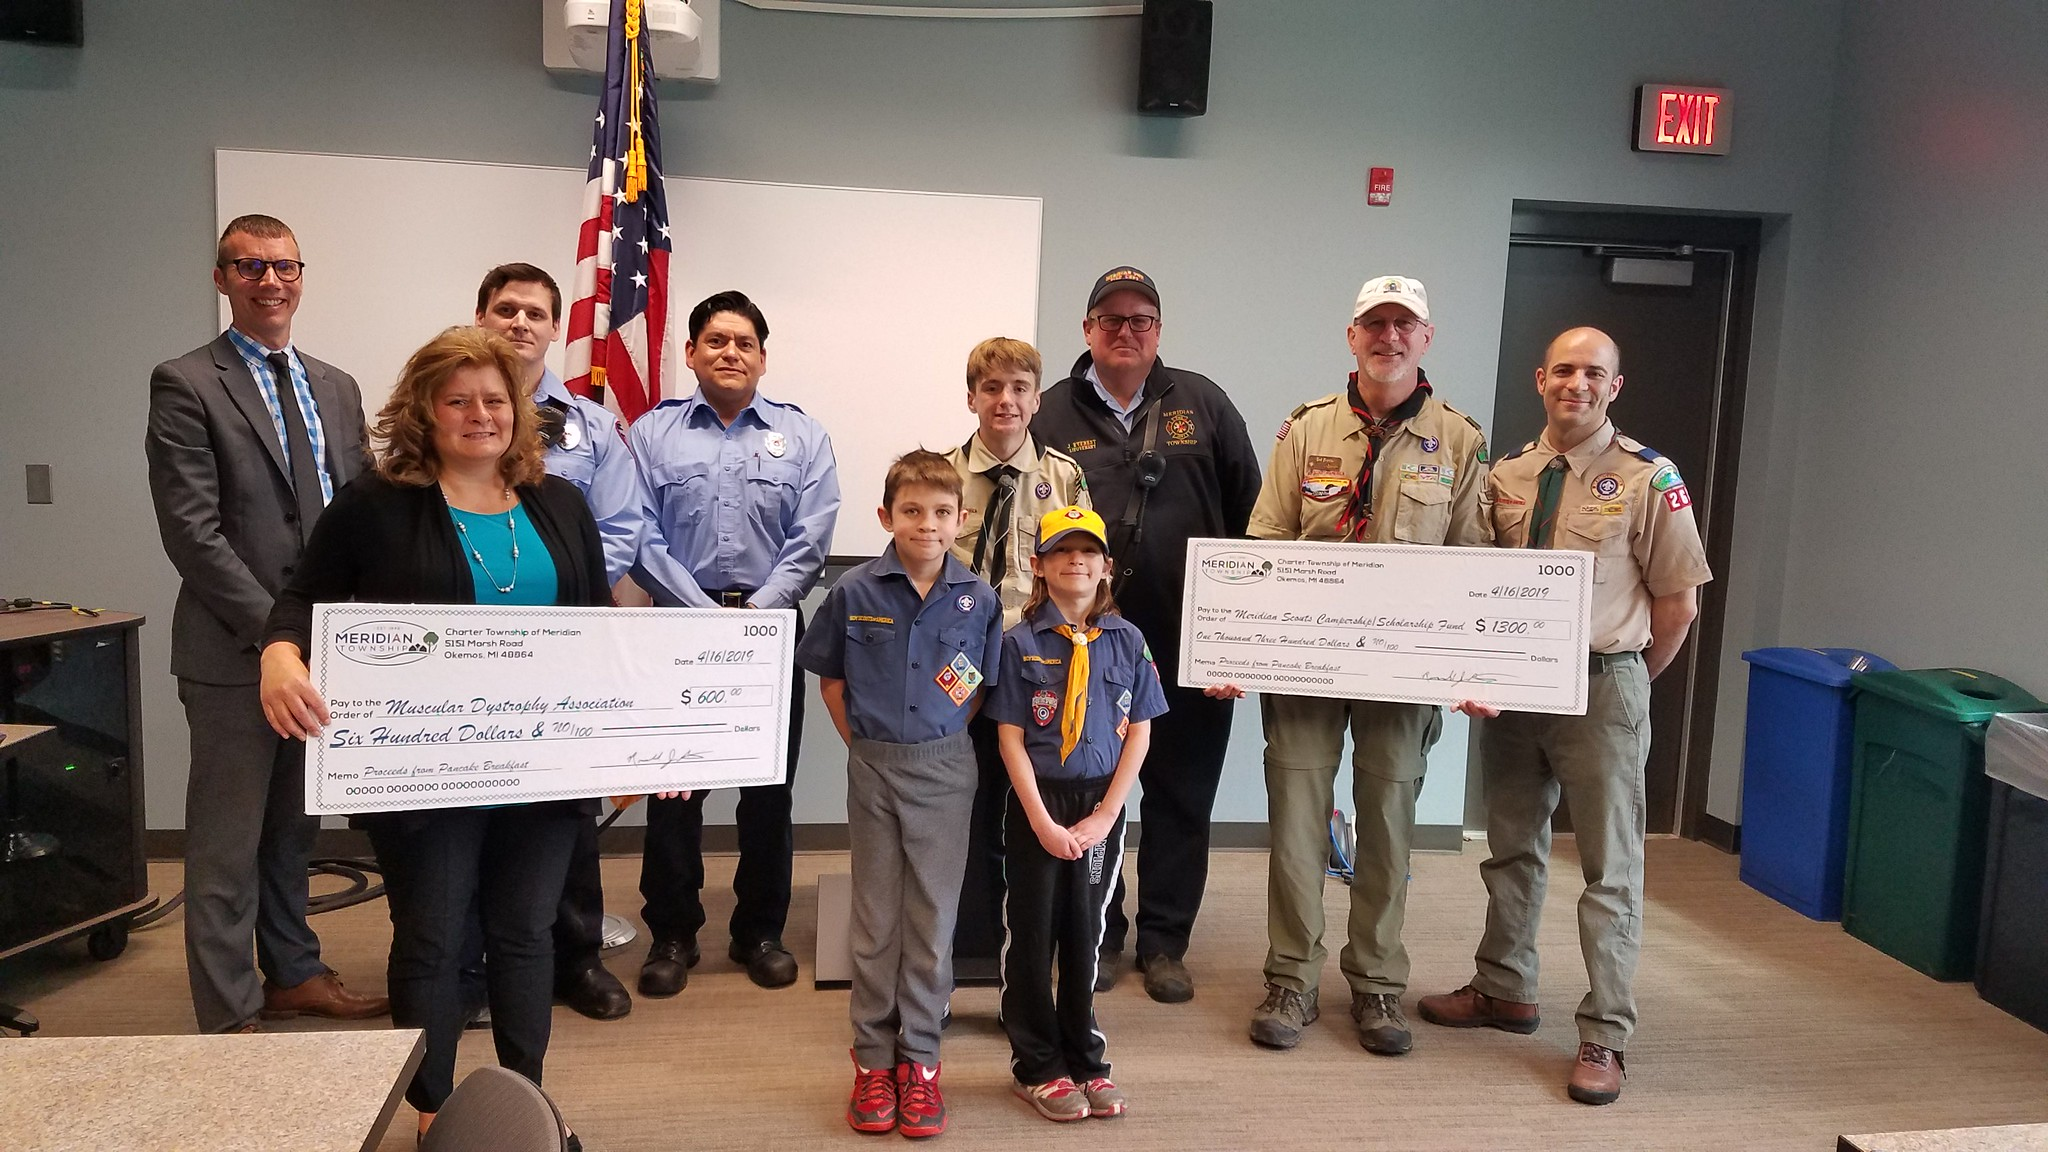 Proceeds From Annual Pancake Breakfast to Help Send Kids to Camp